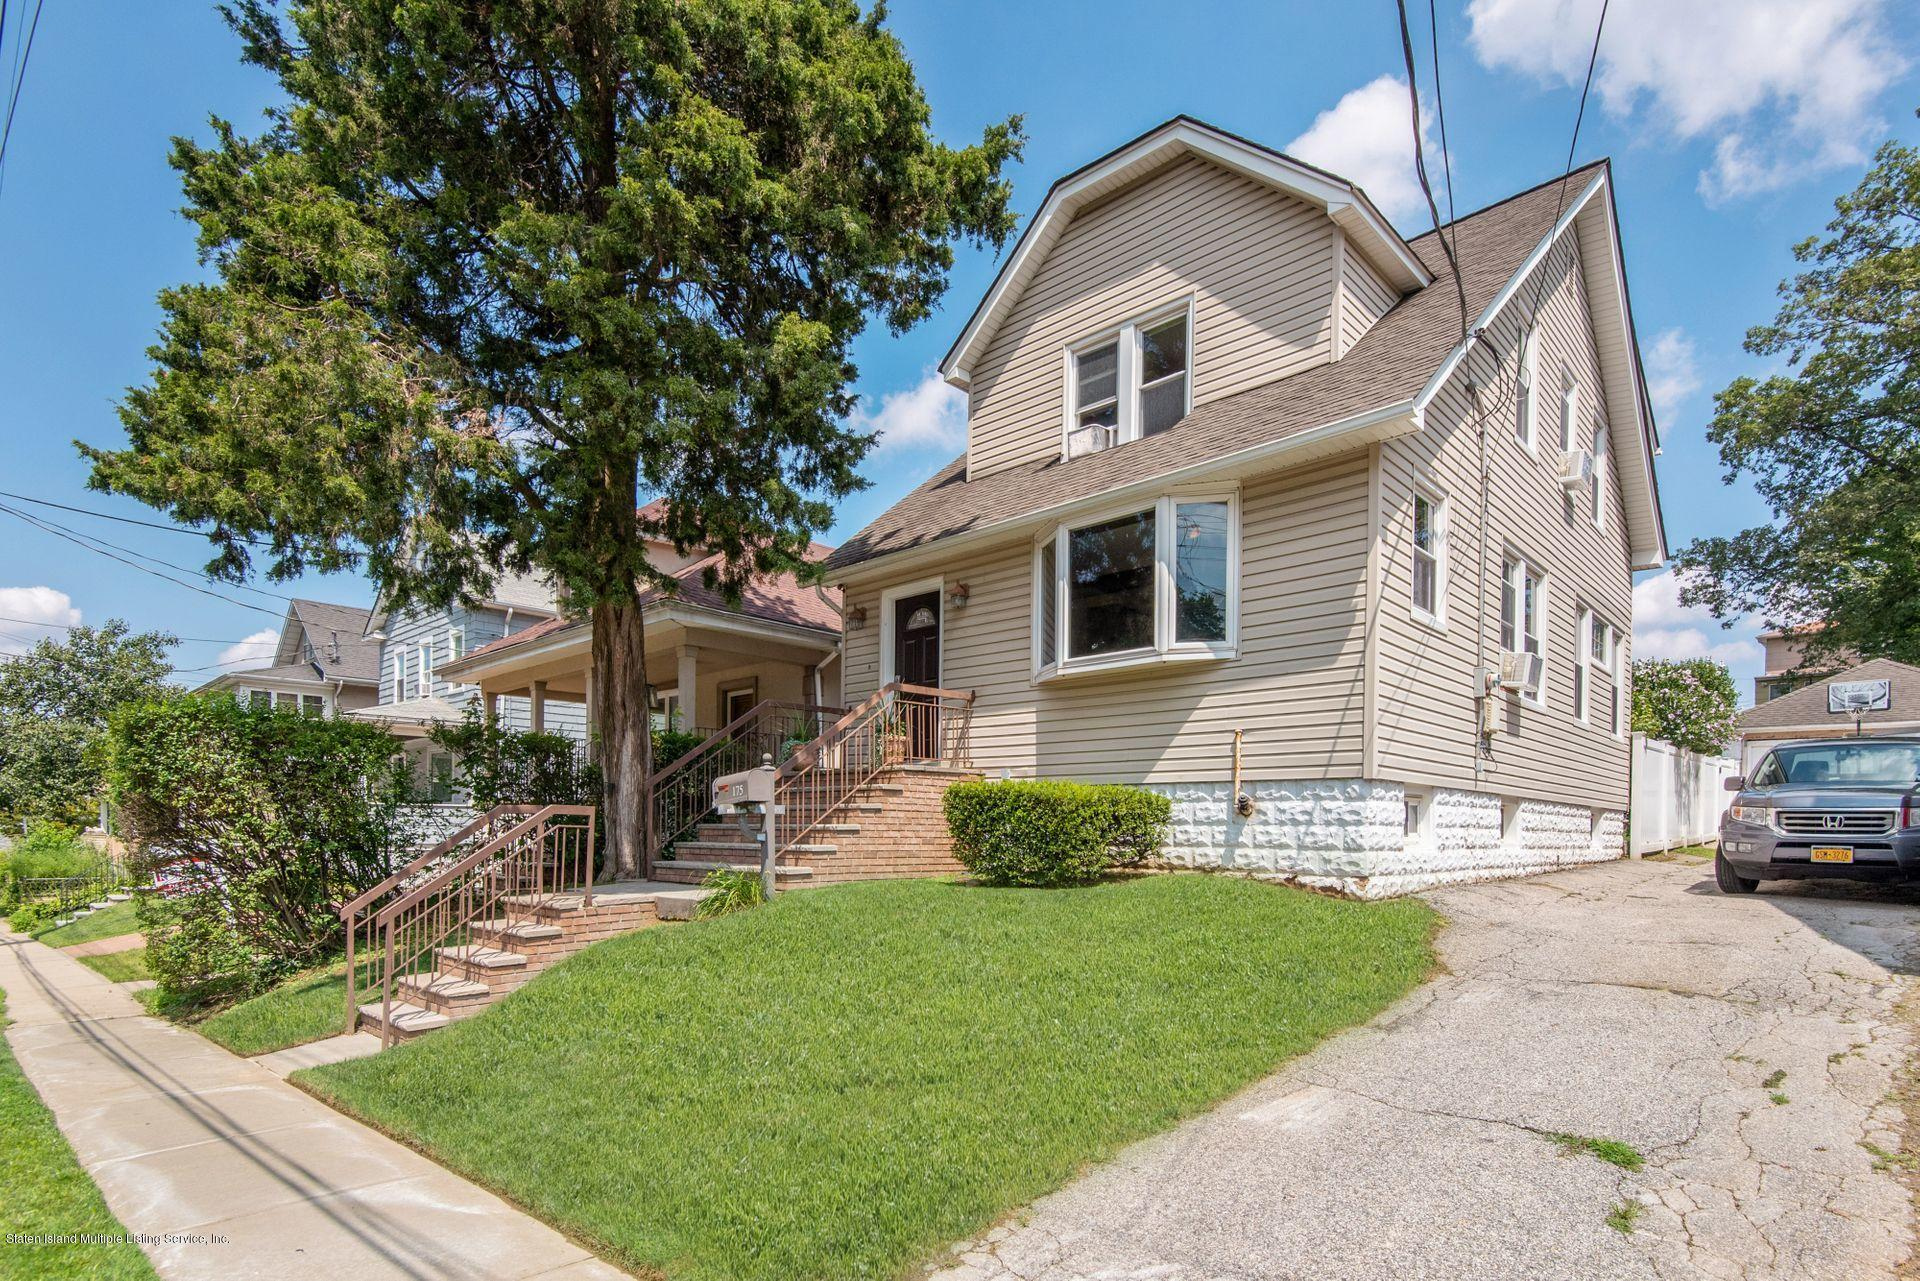 Single Family - Detached 175 Mountainview Avenue  Staten Island, NY 10314, MLS-1132164-22